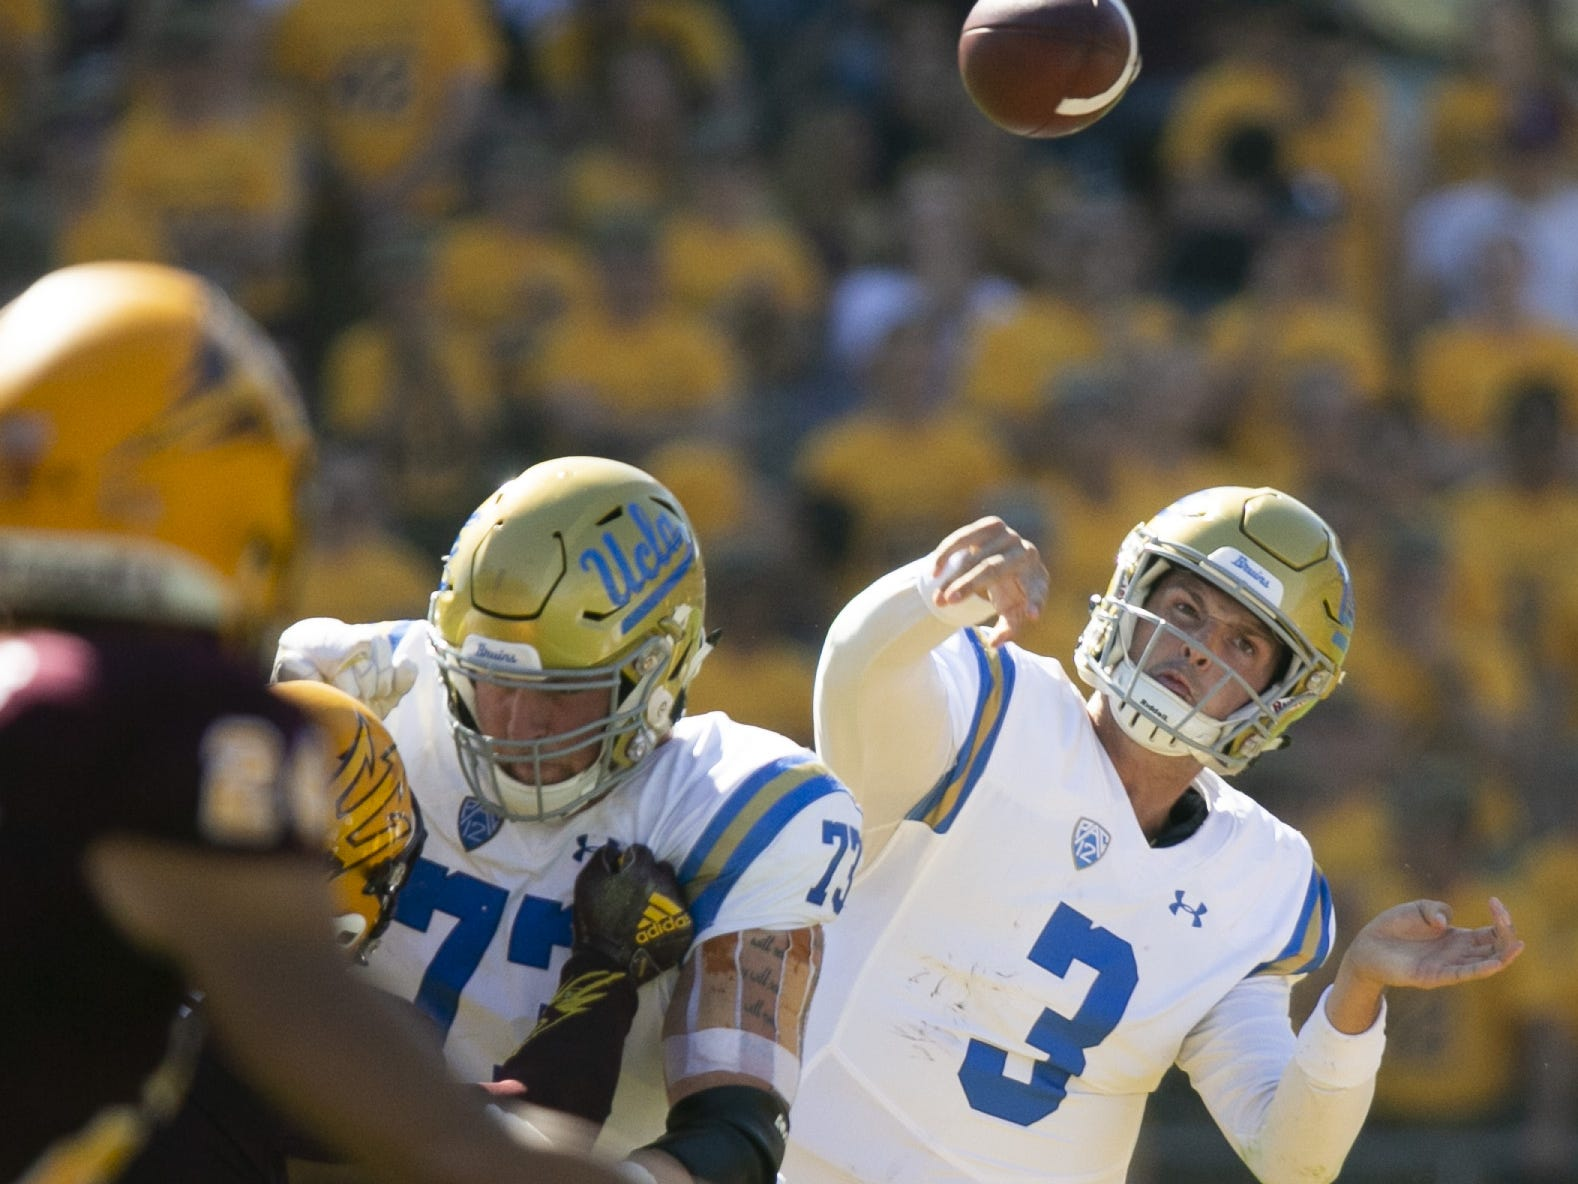 UCLA quarterback Wilton Speight passes against ASU during the second quarter of the PAC-12 college football game at Sun Devil Stadium in Tempe on Saturday, November 10, 2018.